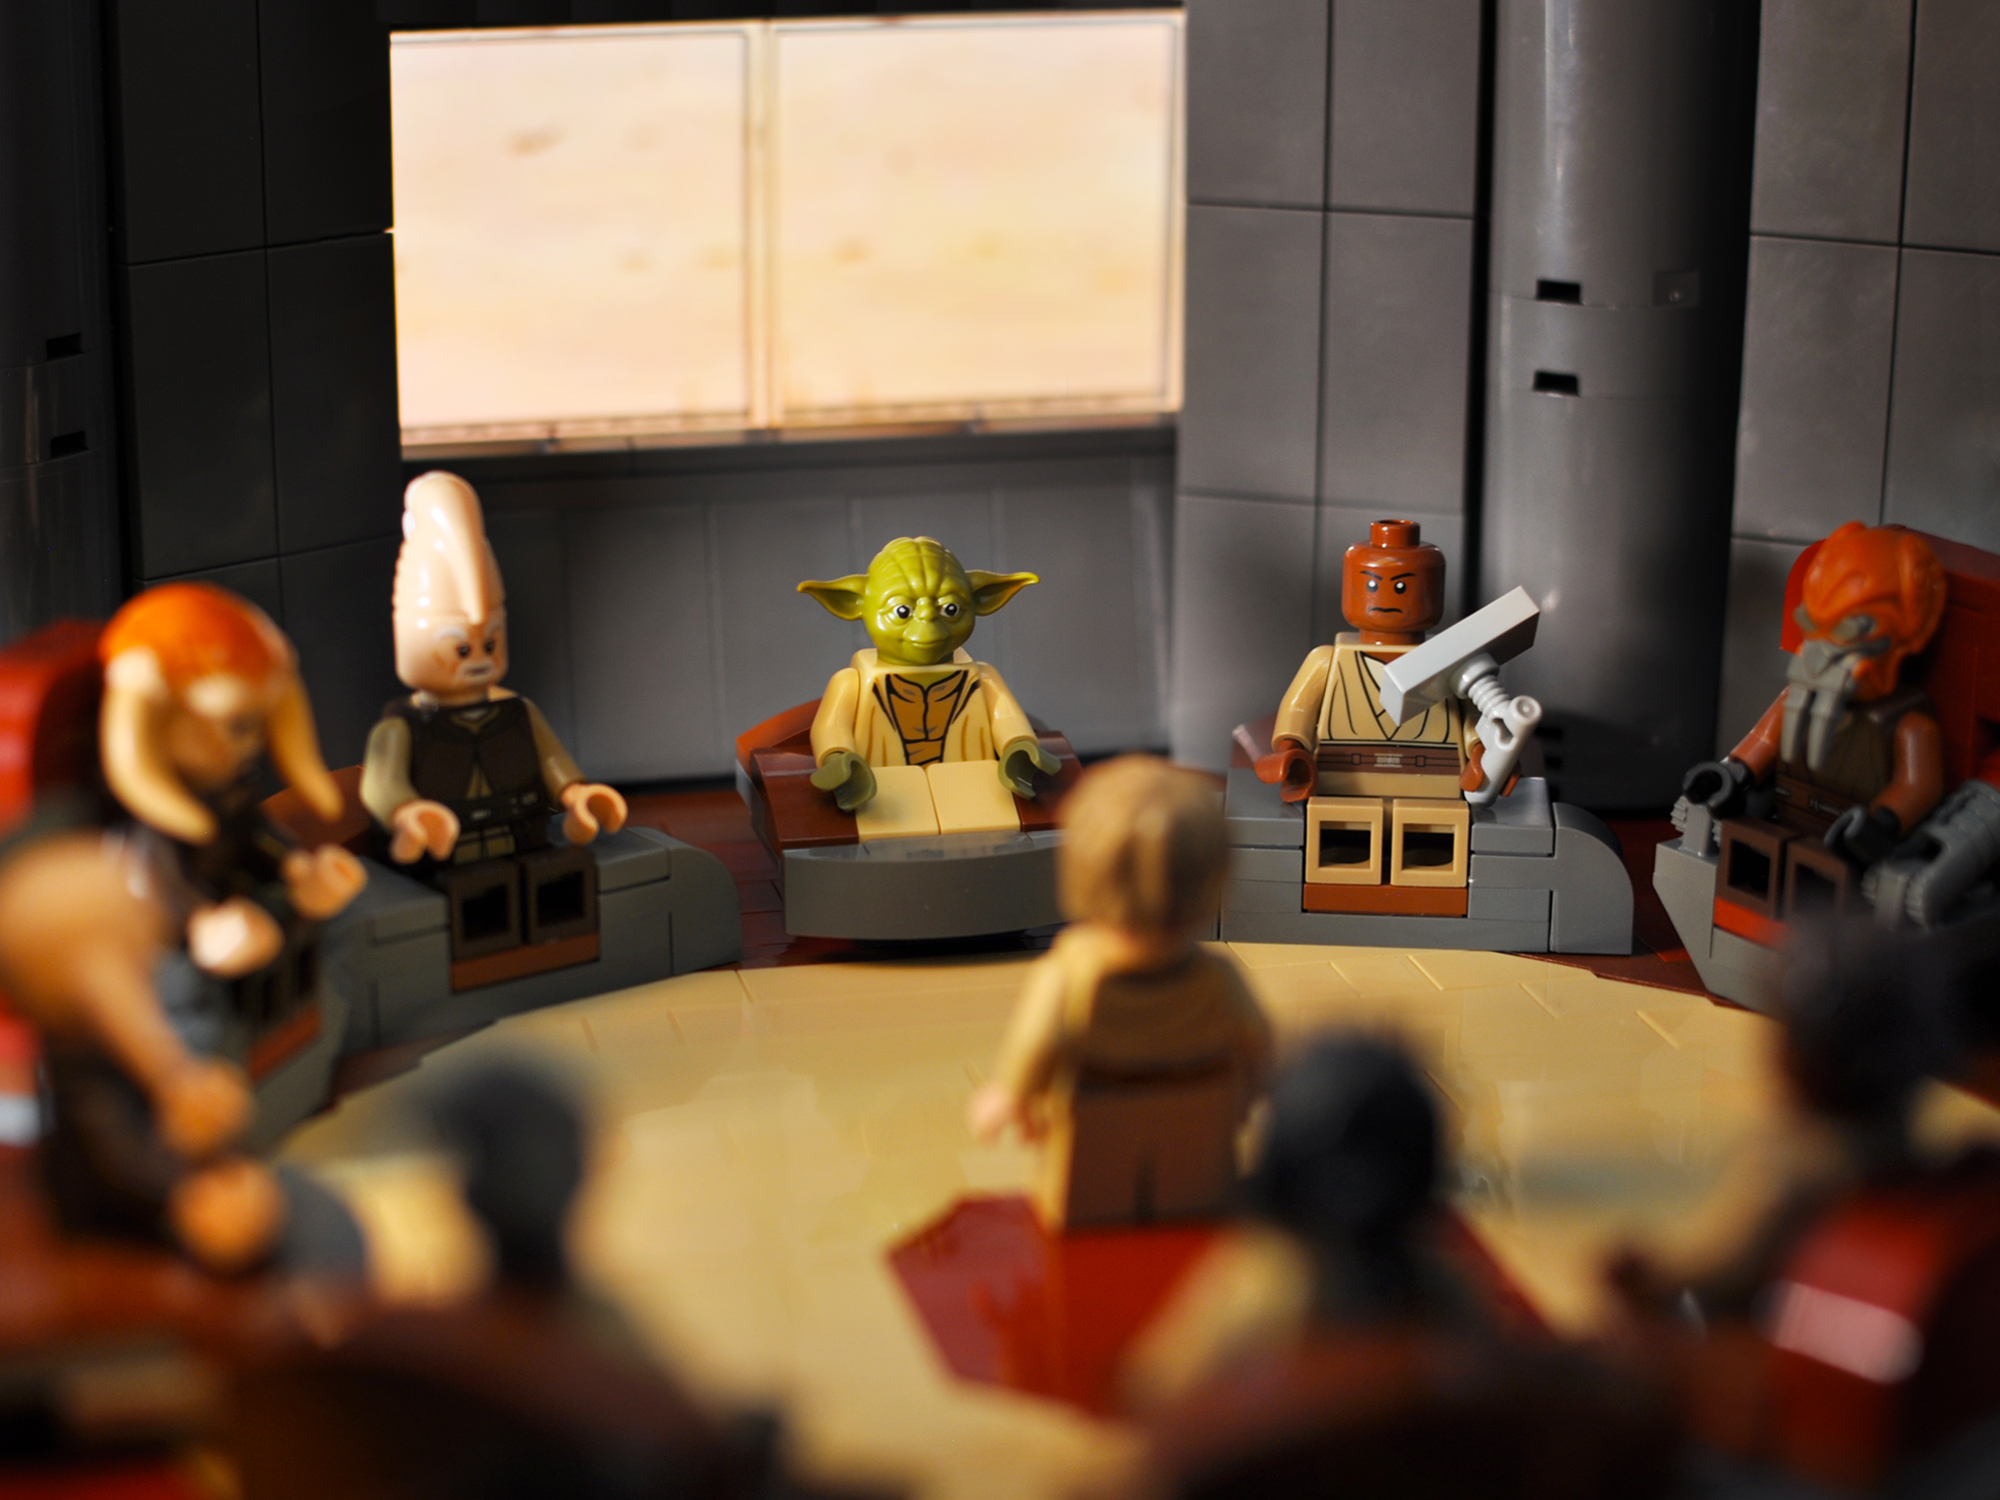 A look at the Lego Star Wars minifigures from 2012.